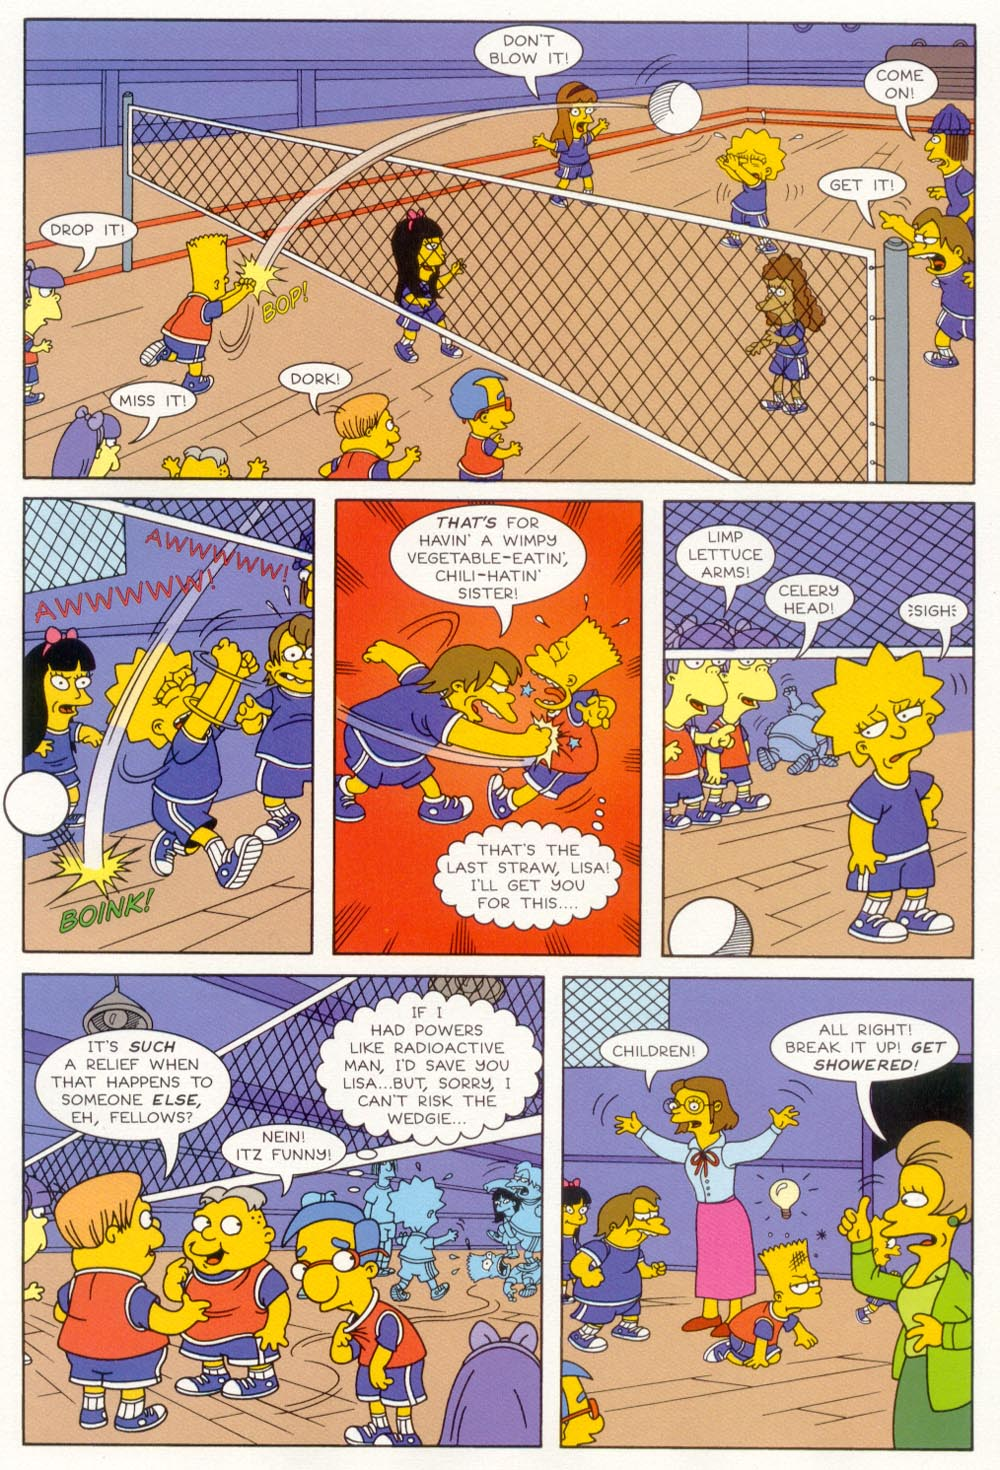 Read online Treehouse of Horror comic -  Issue #5 - 6